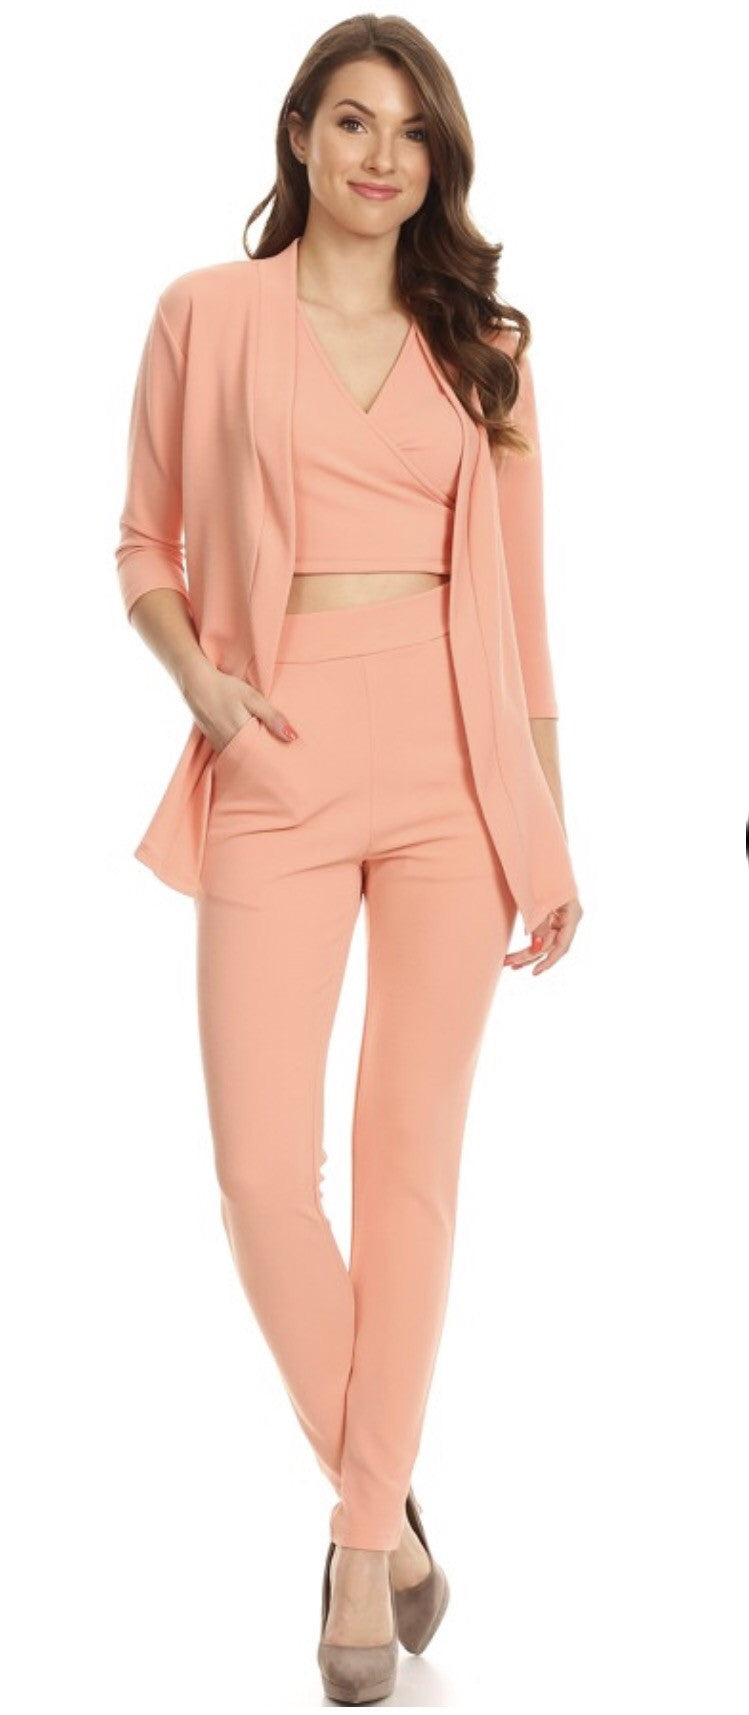 Just Peachy 3 piece pant set